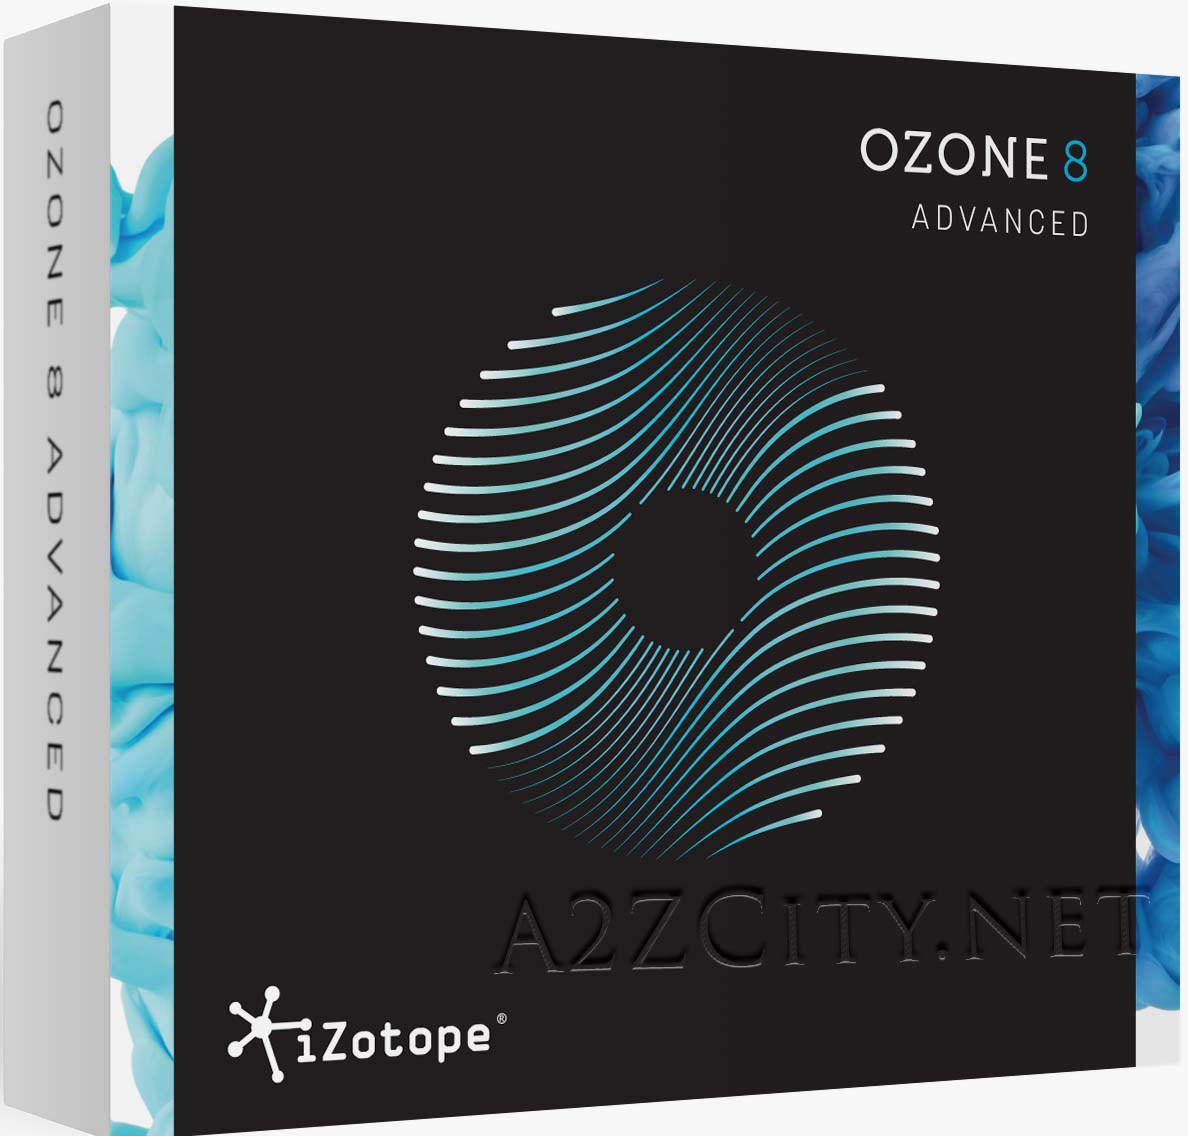 IZotope Ozone 8 Crack & Serial Key 2019 Free Download